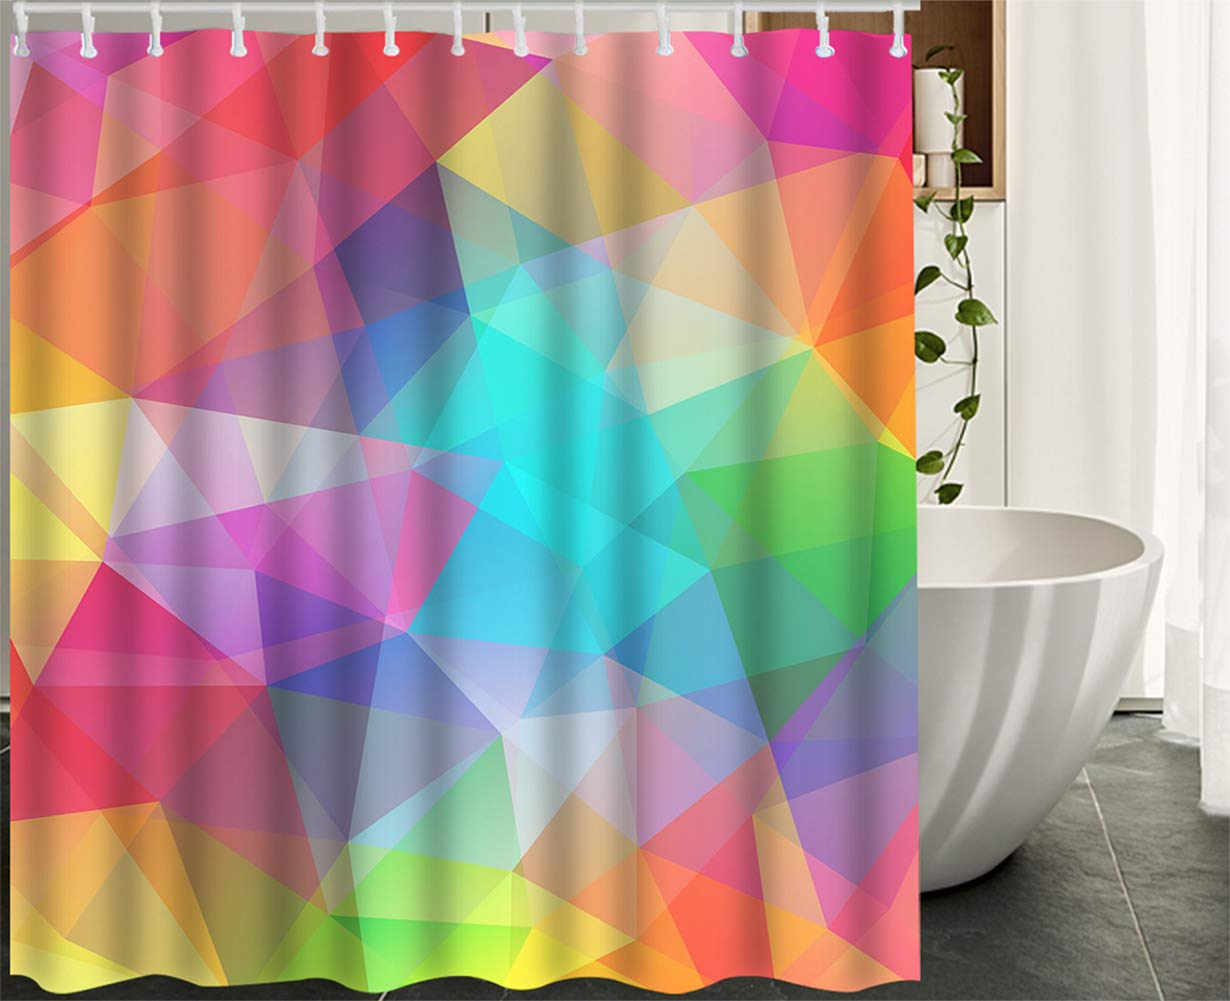 Amazon.com: HGOD DESIGNS Geometric Shower Curtain,Abstract ... on painted bathtub, painted patio designs, painted chairs designs, painted floor designs, painted table designs, painted furniture designs, painted photography, painted boat designs, painted closets, painted door designs, painted carpet designs, painted glass designs, painted room designs, painted porch designs, painted christmas designs, painted fireplace designs, painted bedroom, painted window designs, painted cabinet designs, painted car designs,